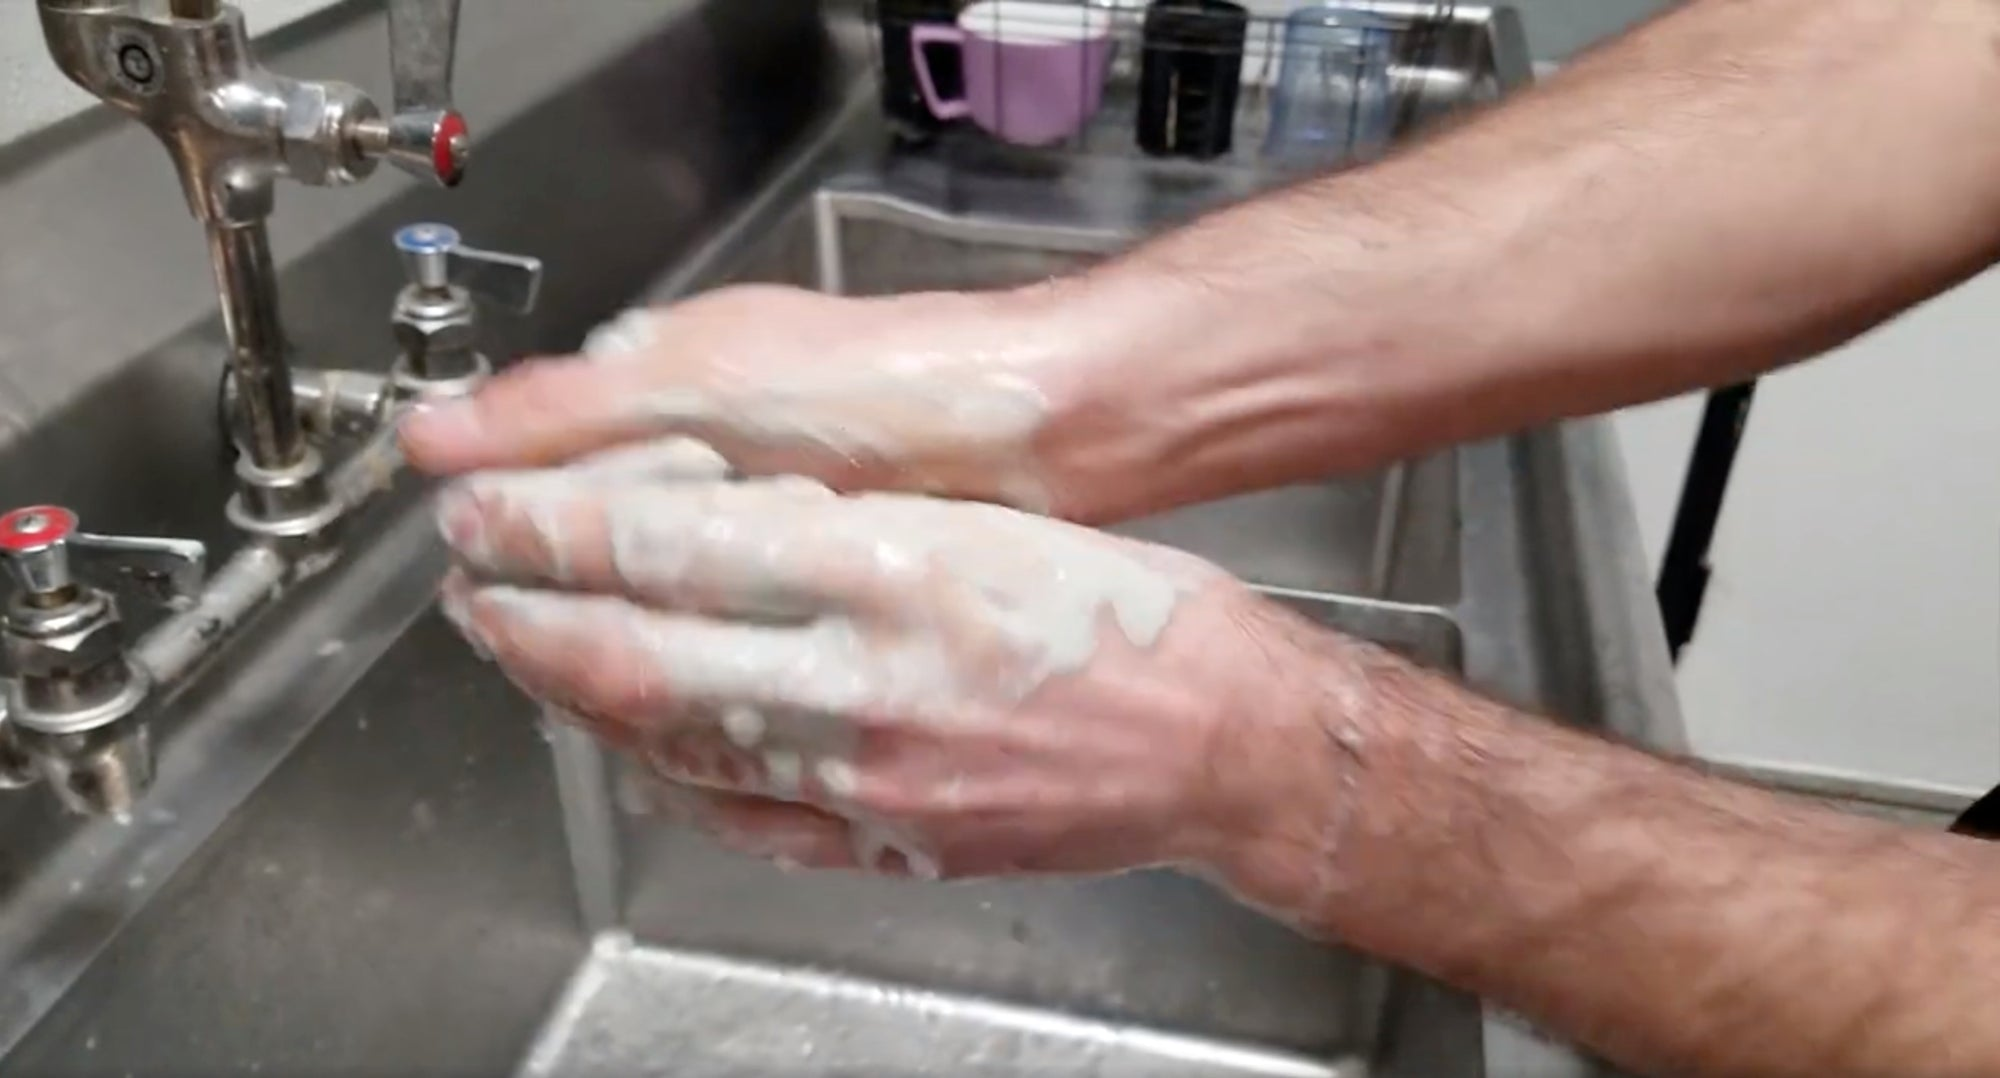 How to remove axle grease from your hands